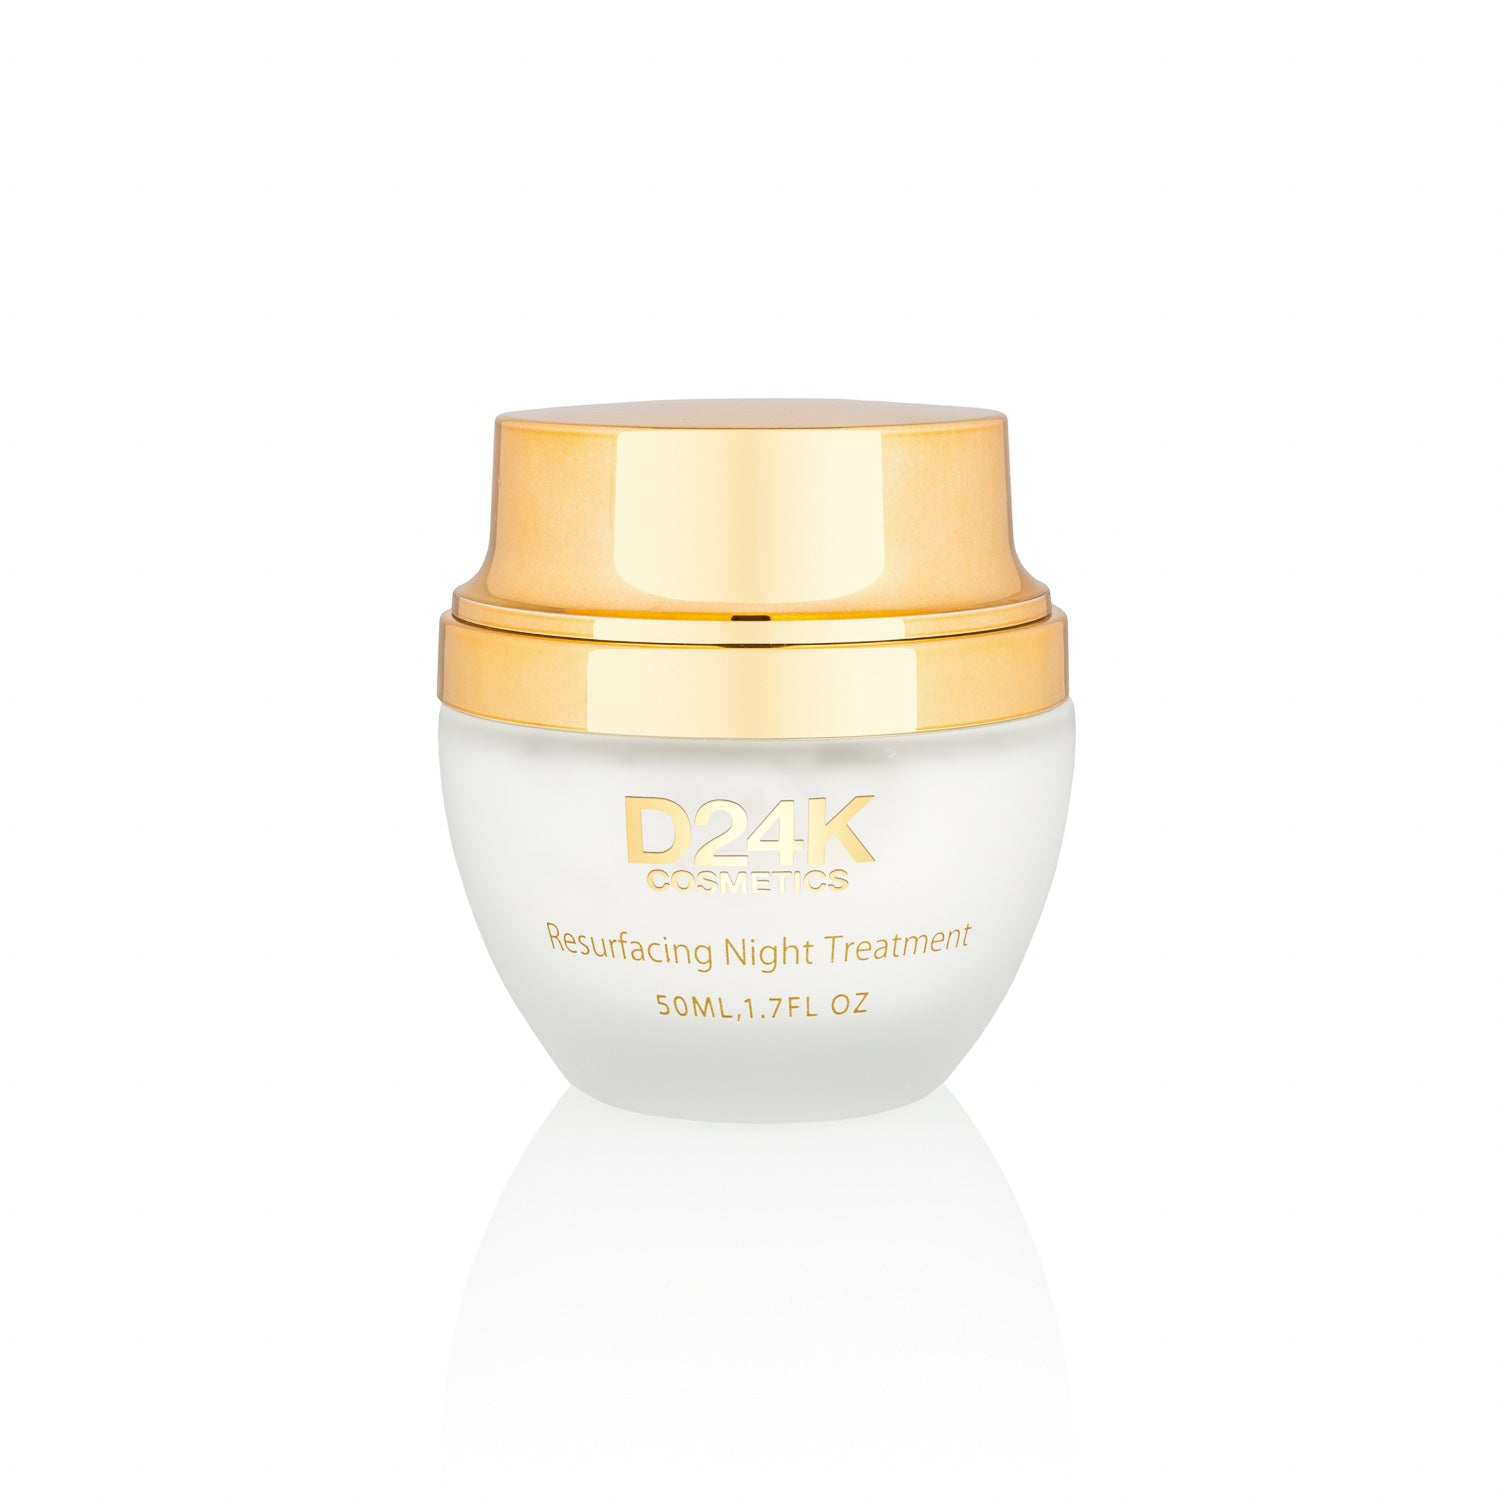 D24K - 24K Resurfacing Night Treatment